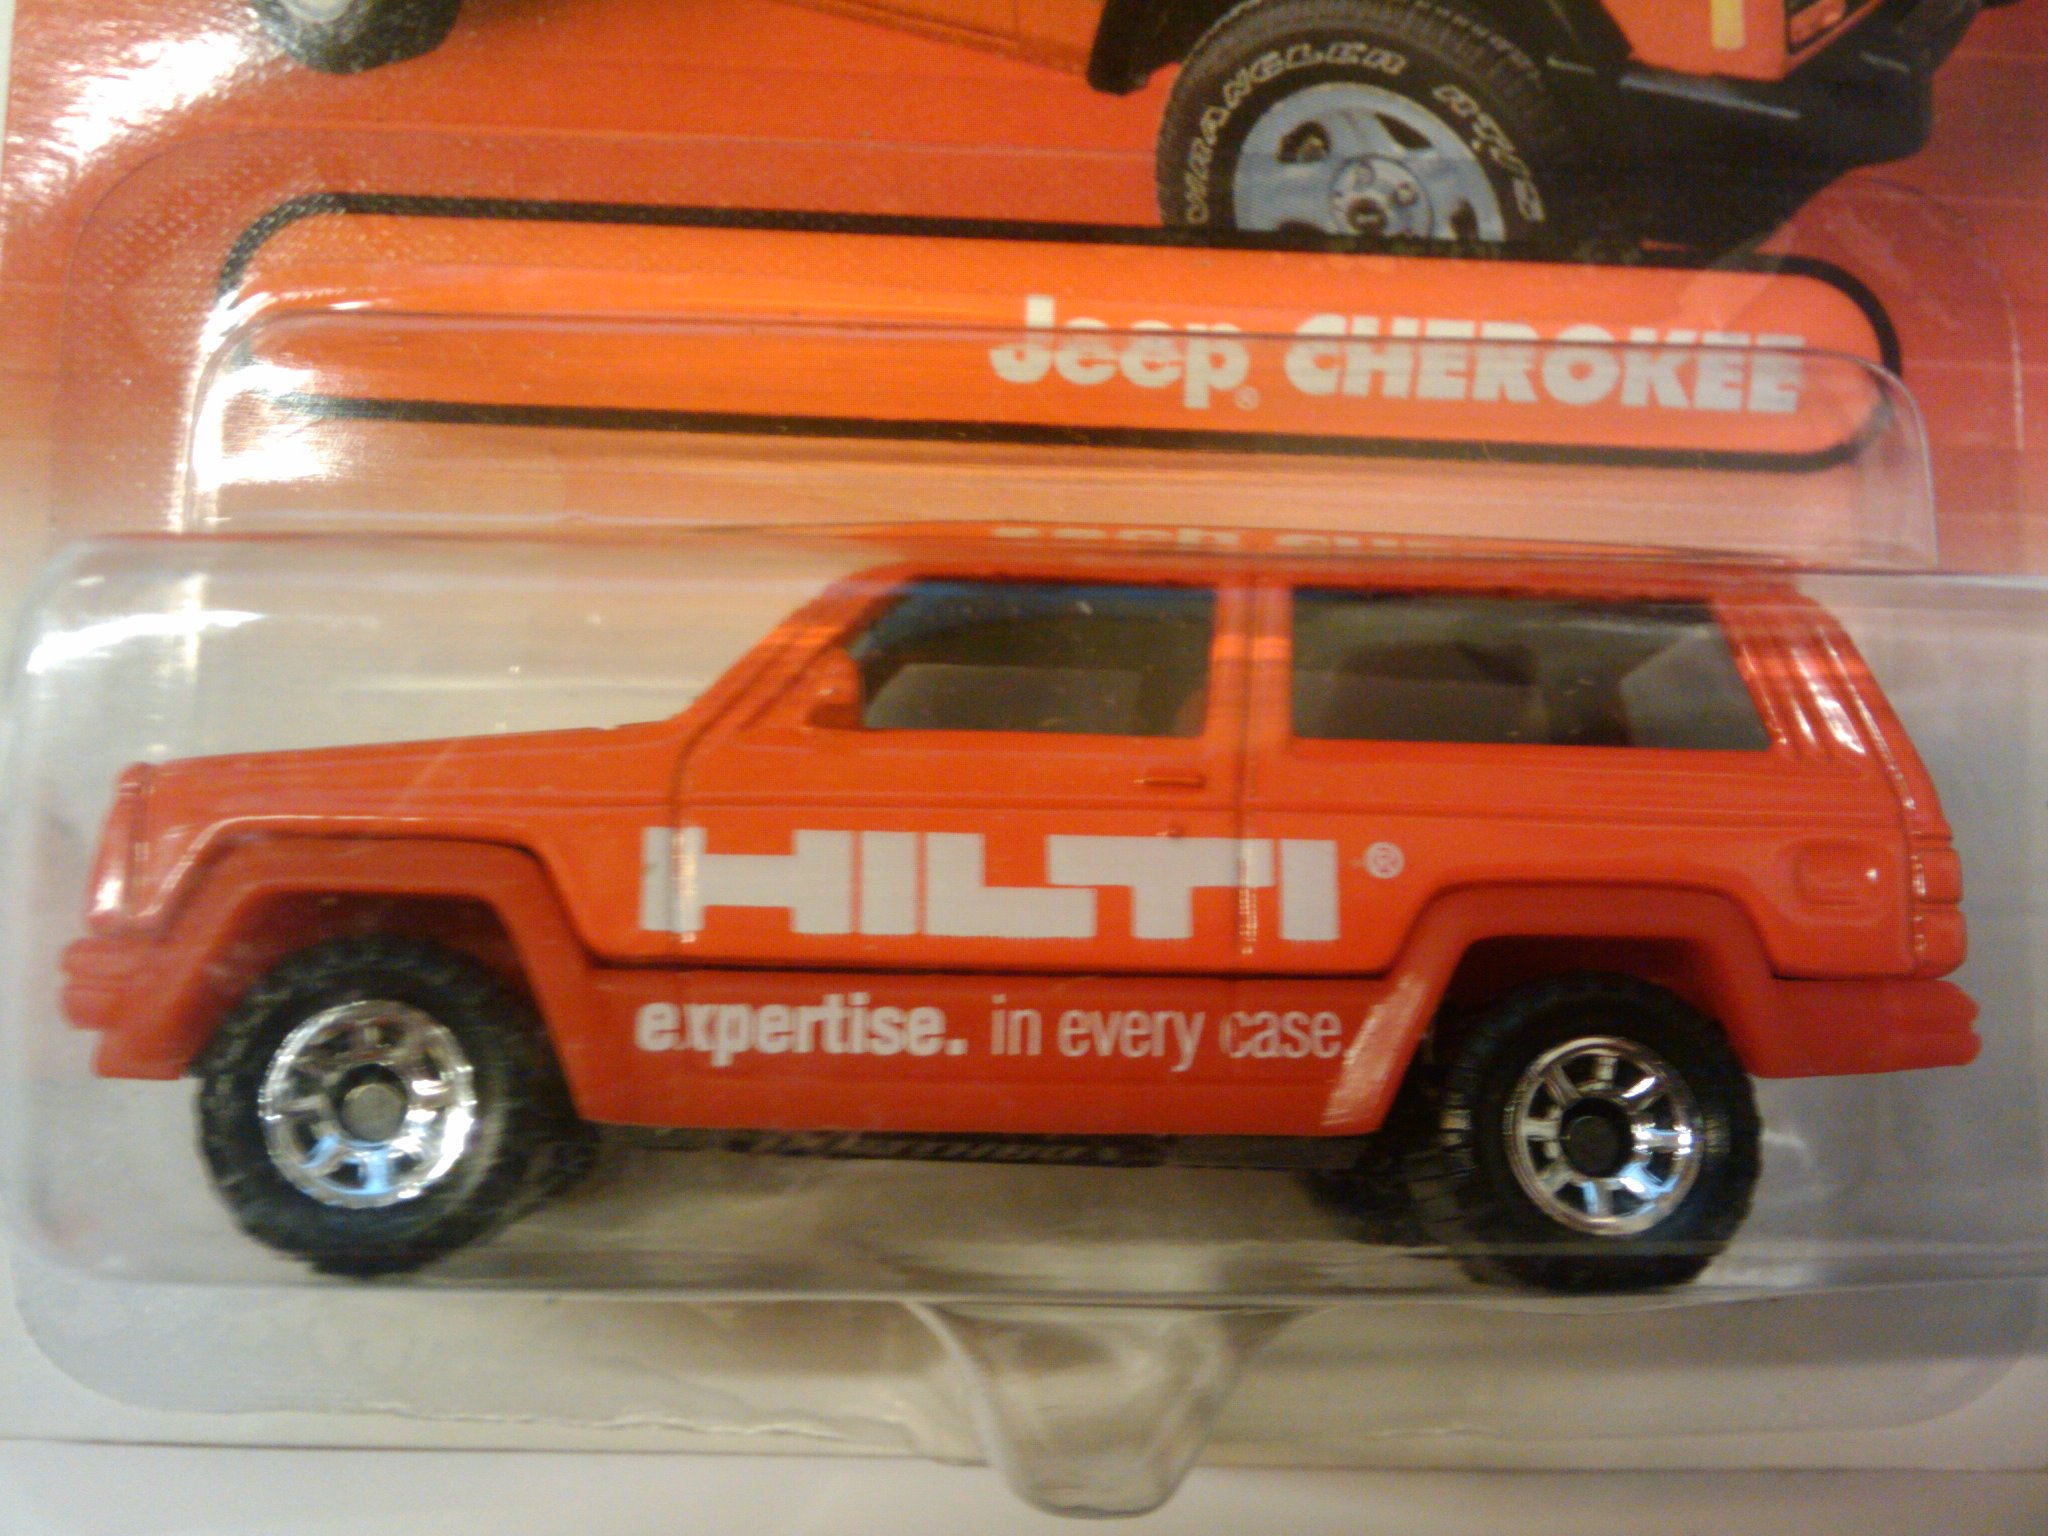 Jeep Cherokee Matchbox Cars